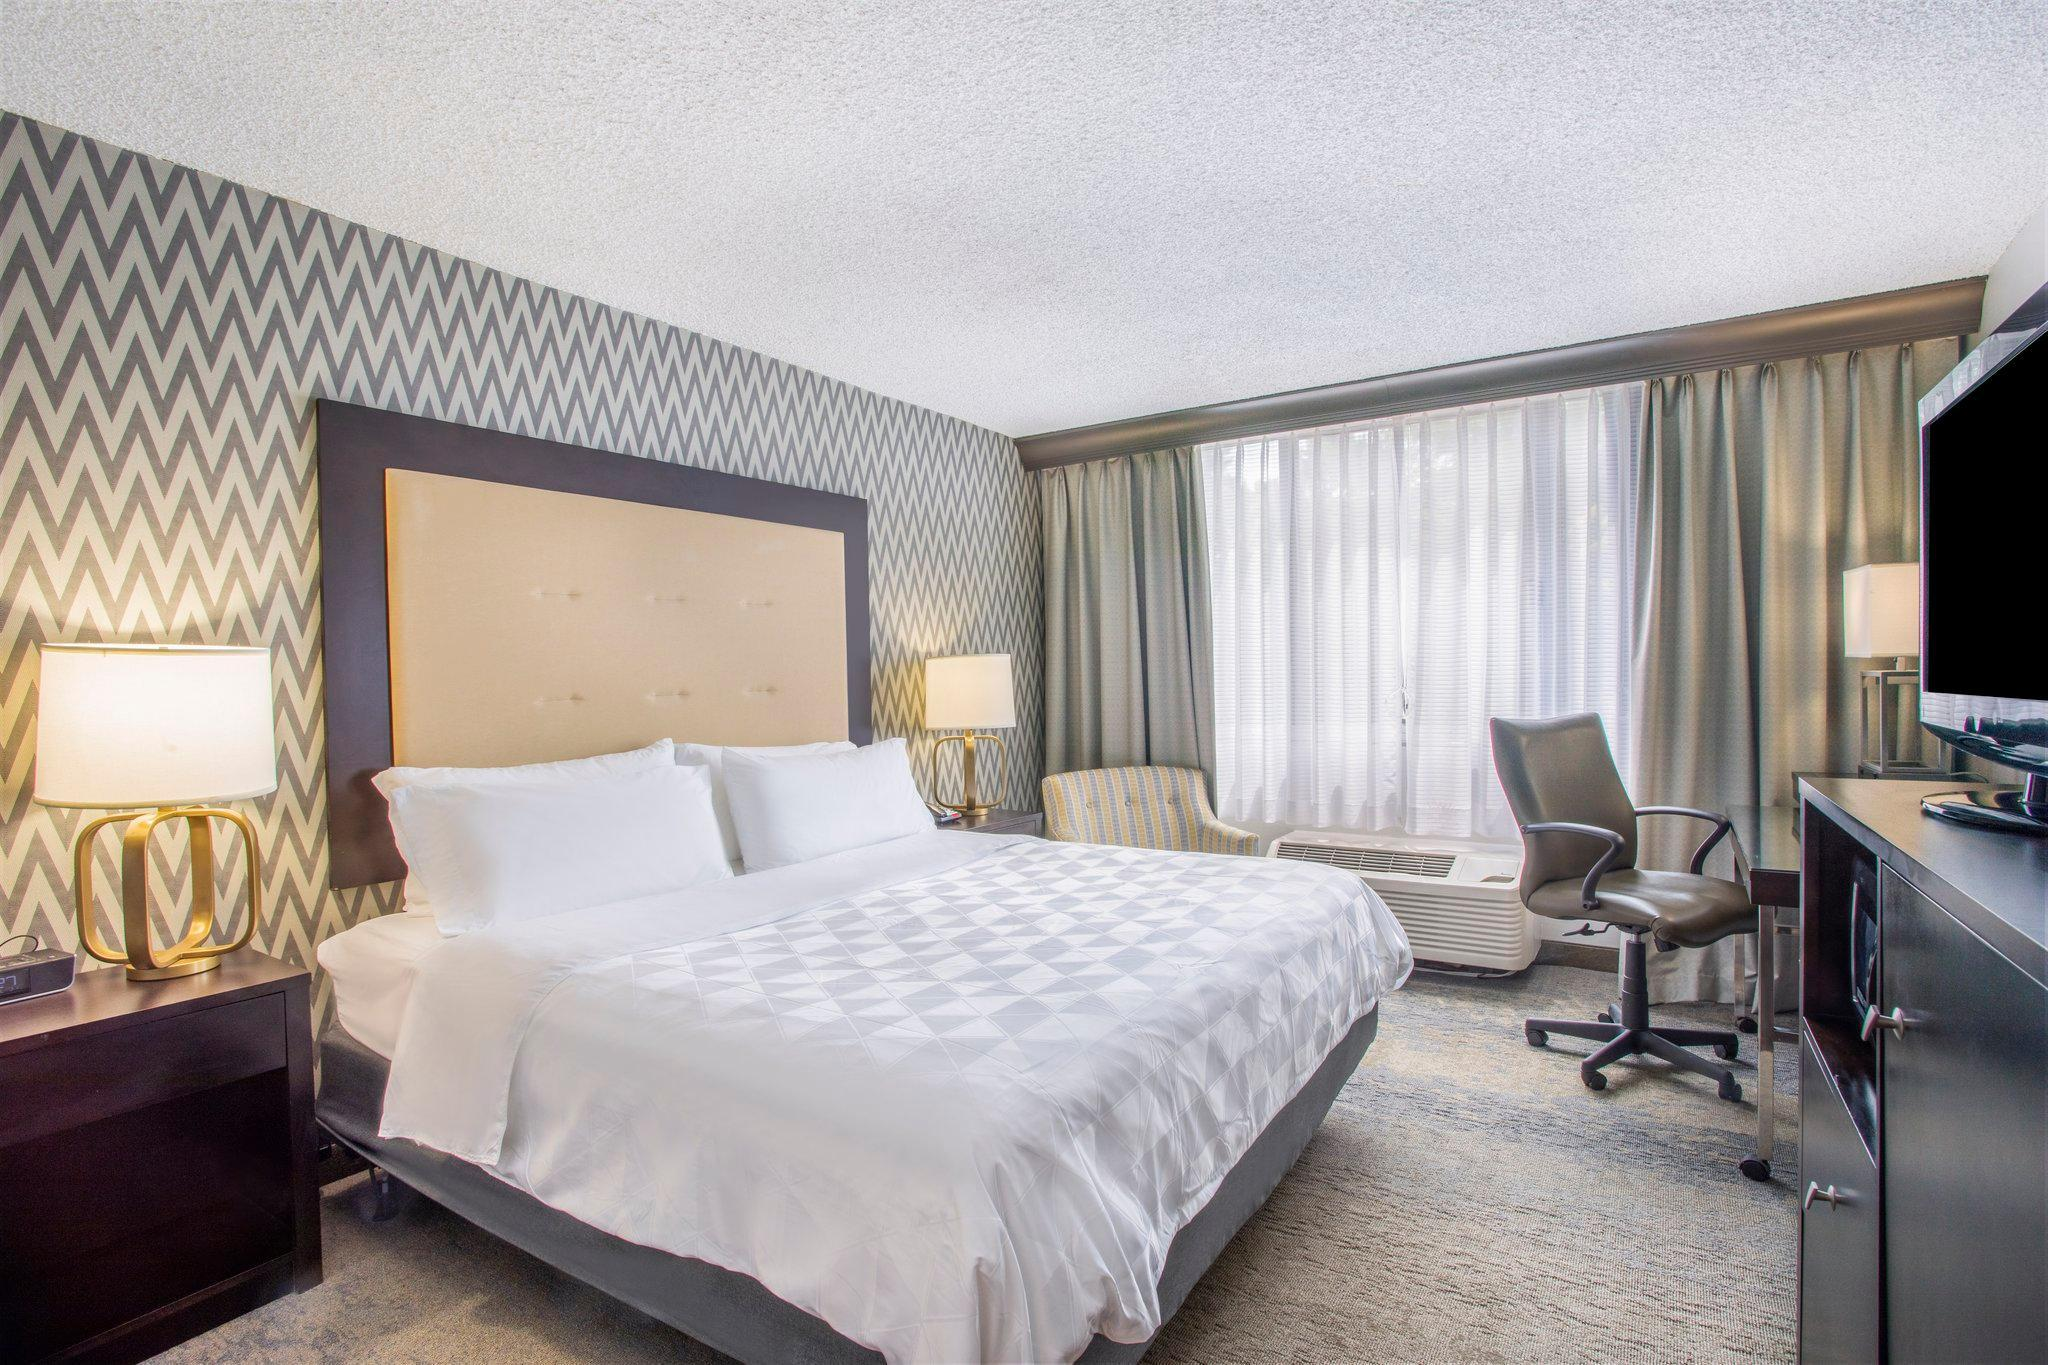 Holiday Inn Hotel & Suites Parsippany/Fairfield, Morris